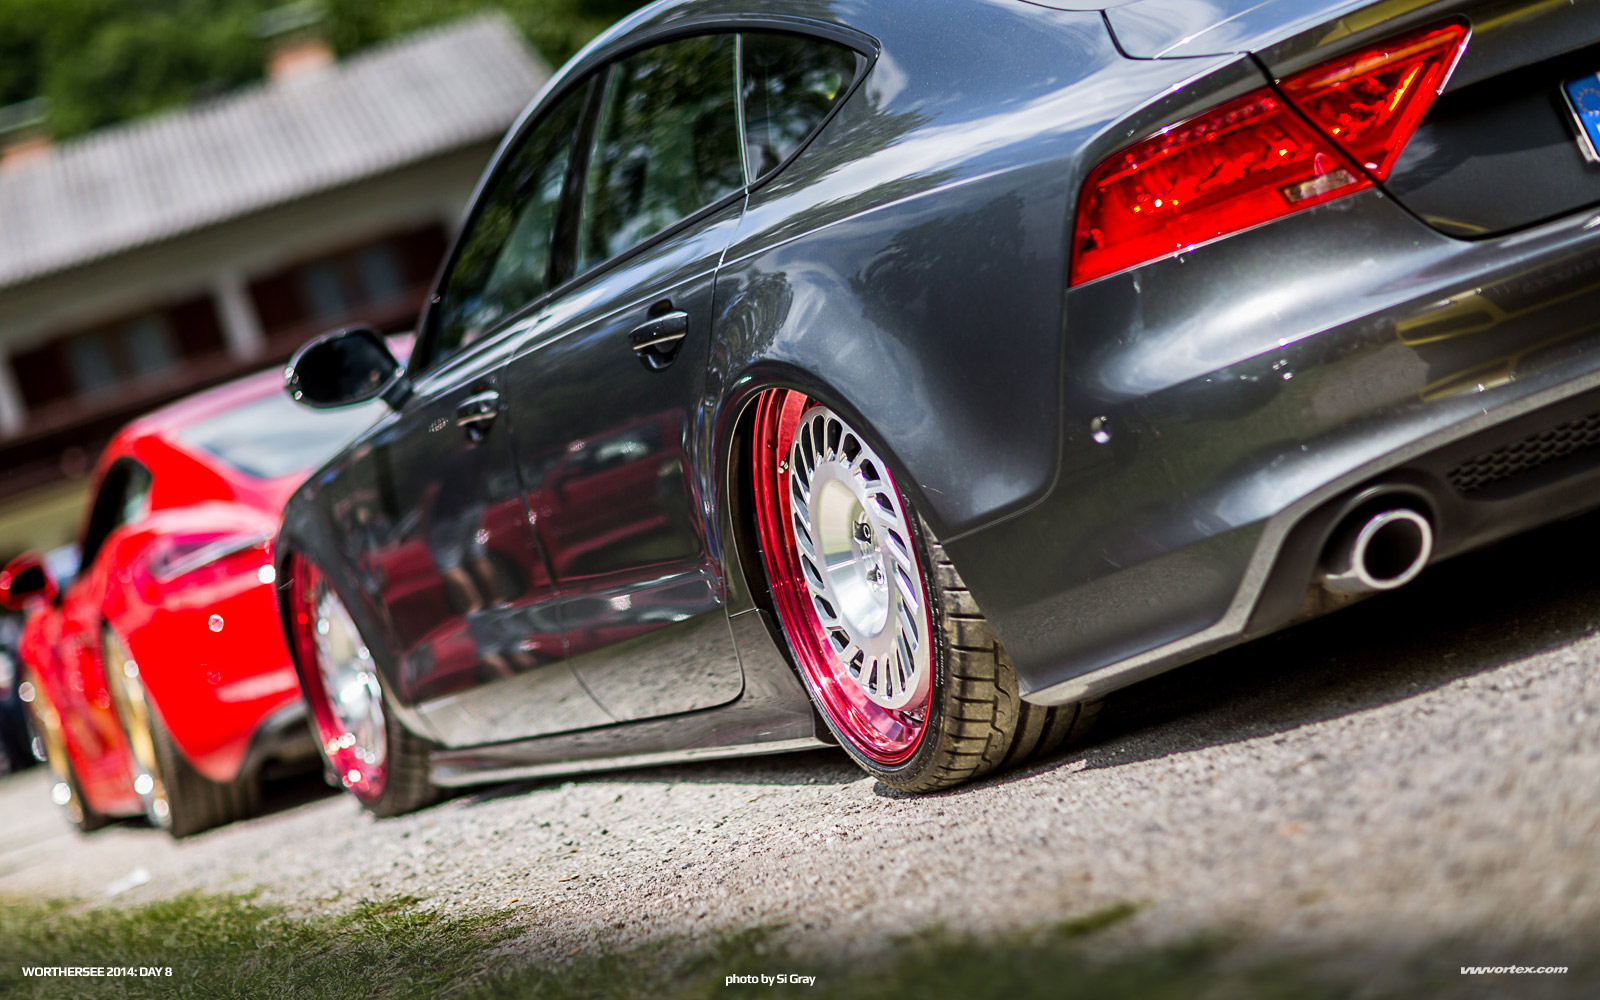 2014-Worthersee-Day-8-Si-Gray-1120